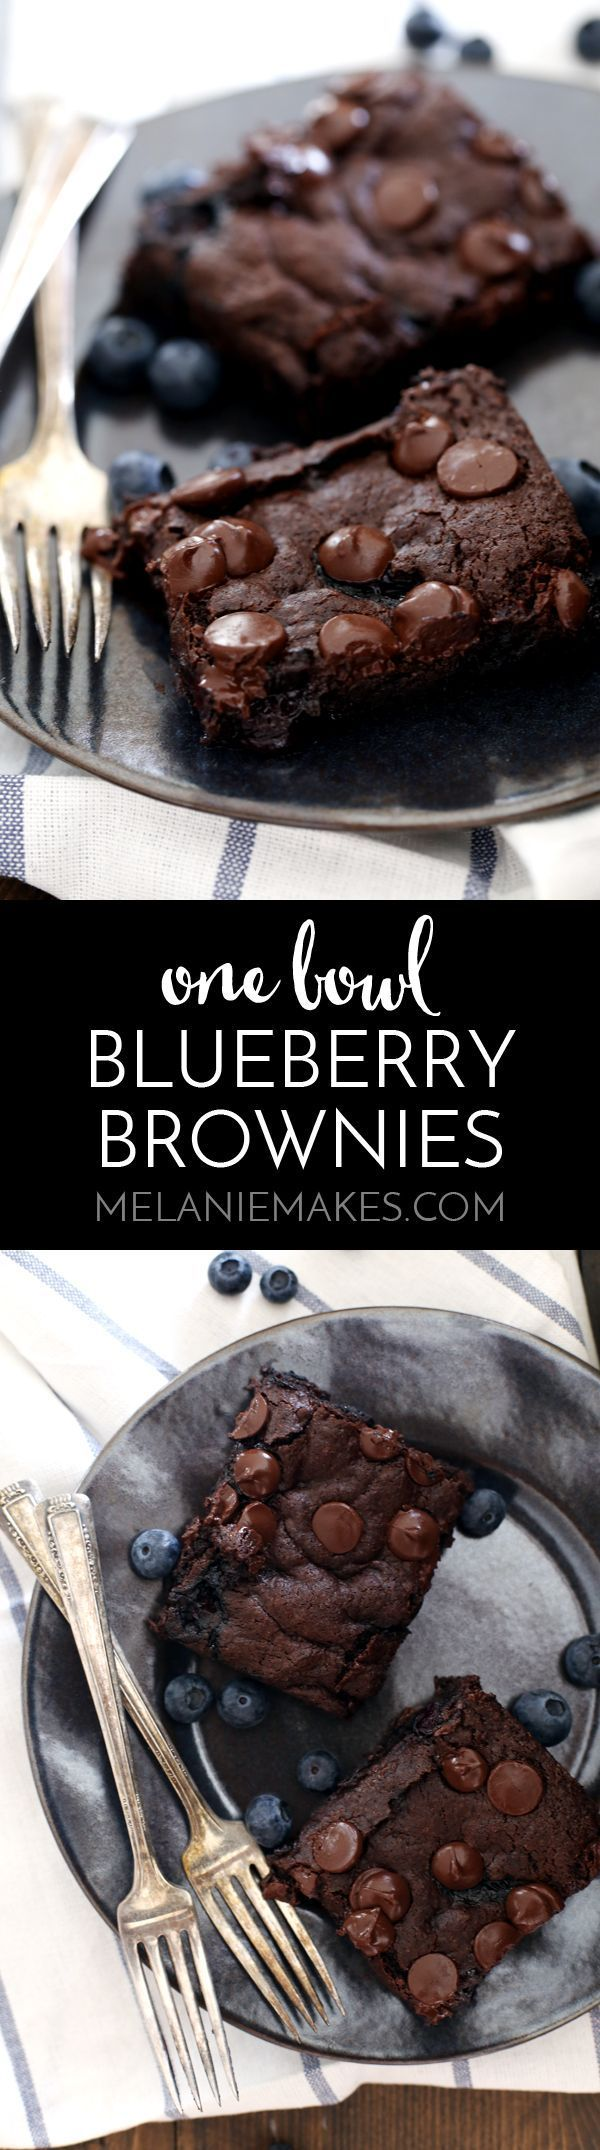 These One Bowl Blueberry Brownies come together in one bowl, just as their name implies, making clean-up a breeze! A pint of blueberries…